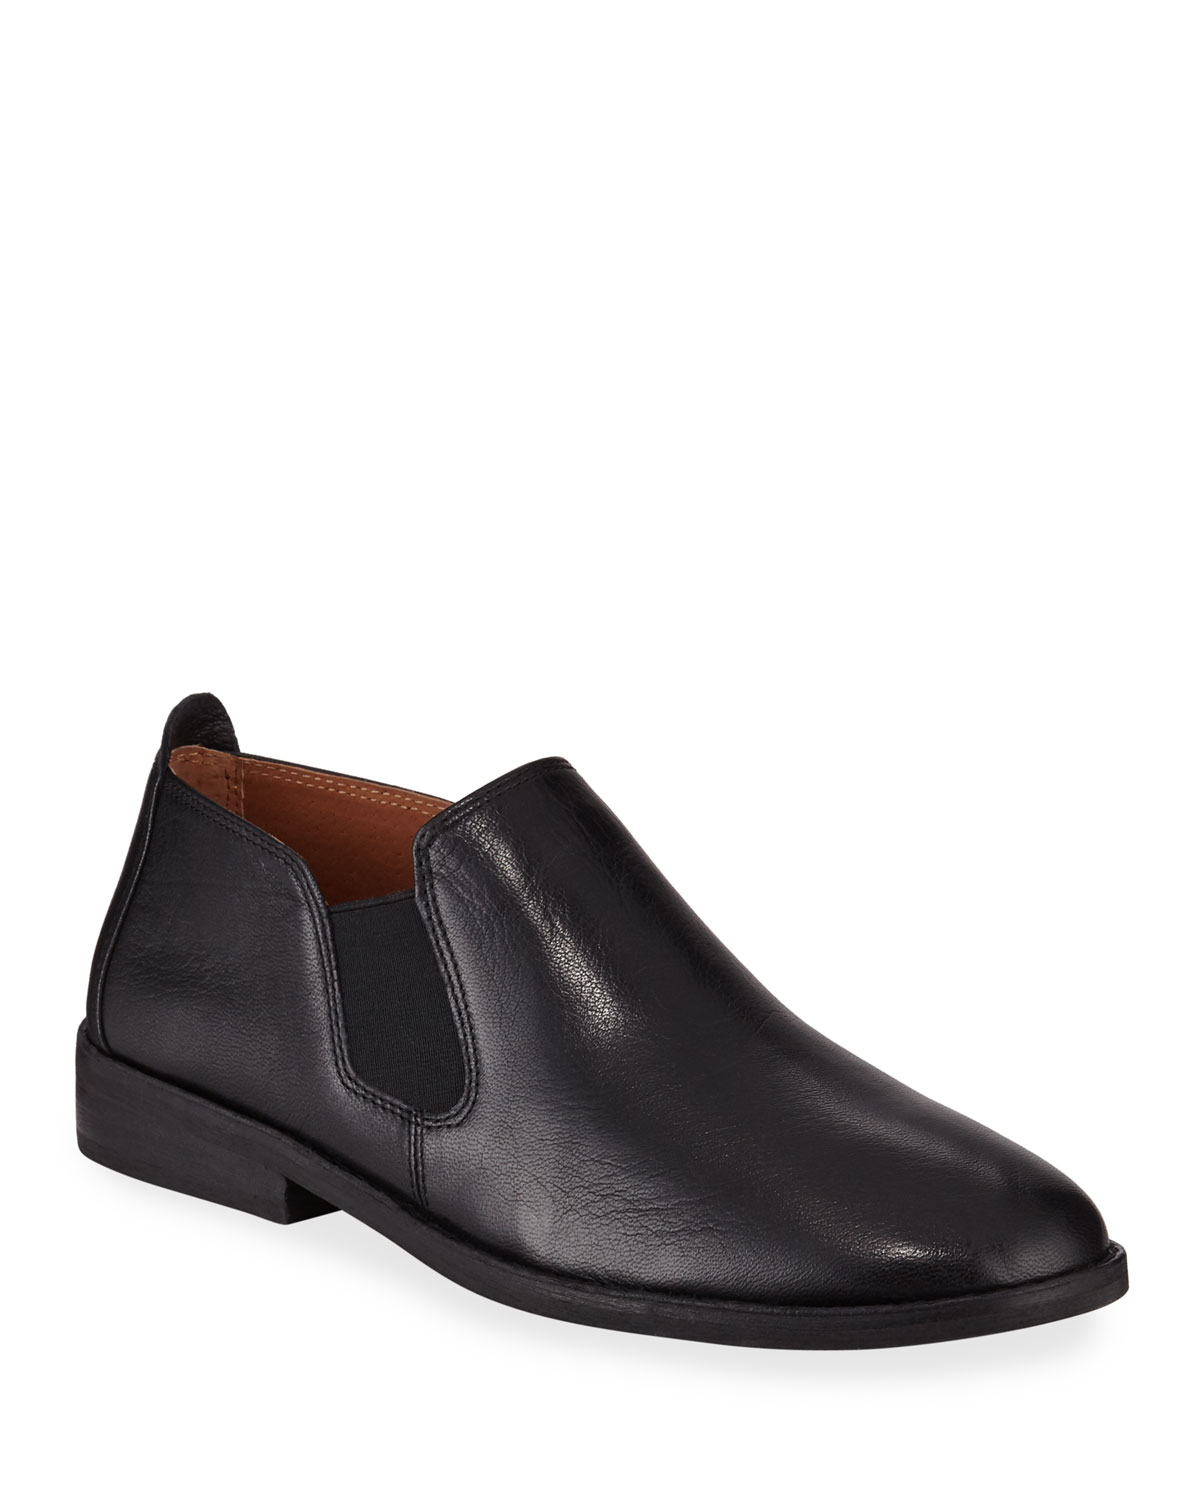 Essex Easy Leather Booties